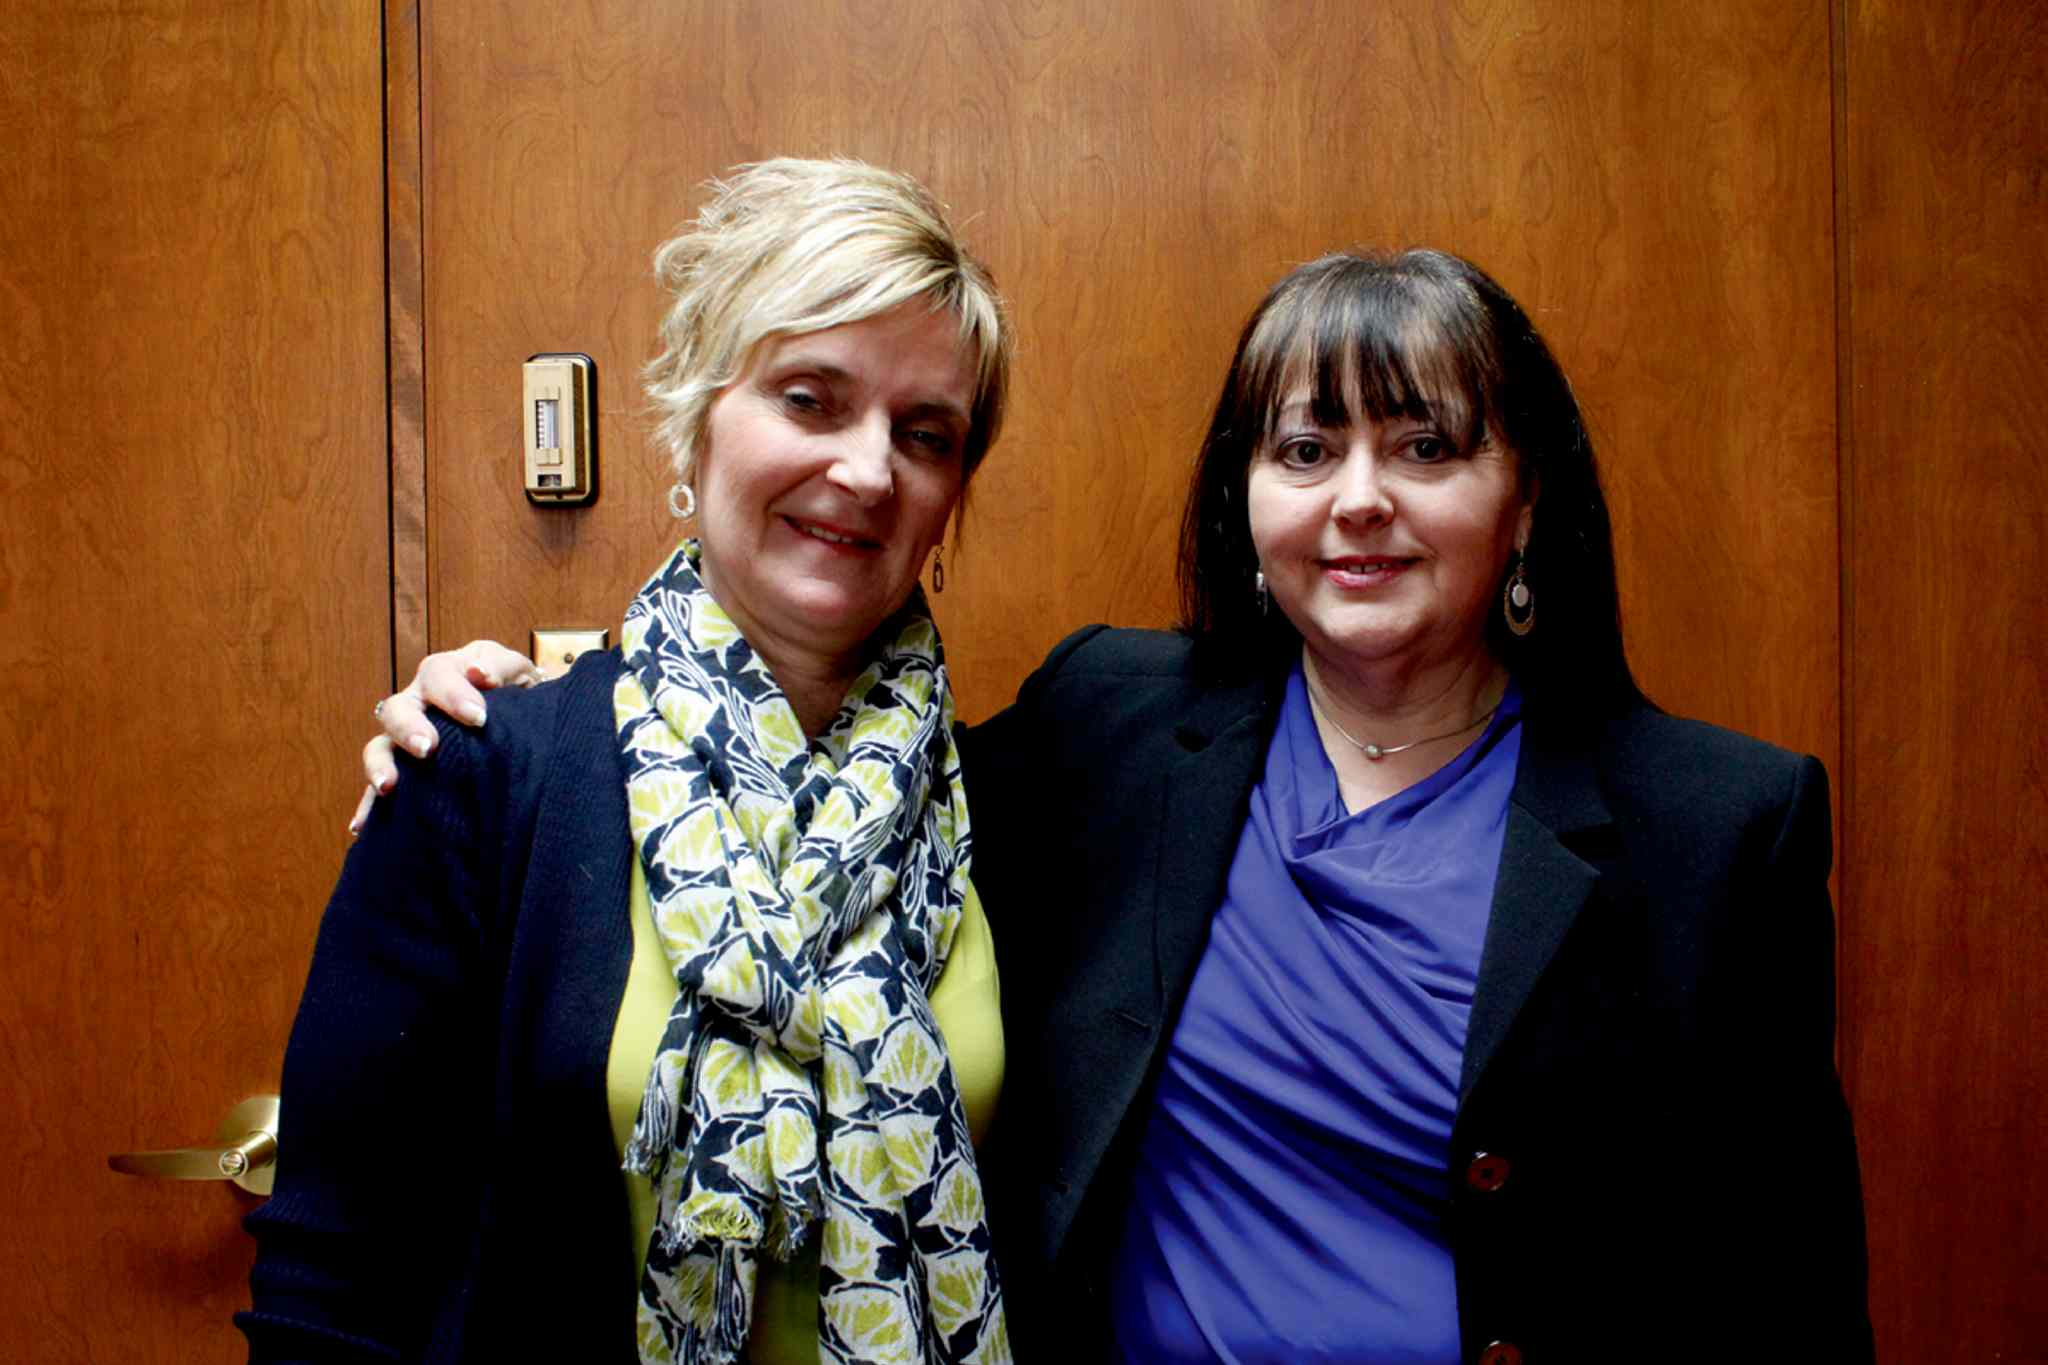 Luba Krosney (left) is leaving her position as principal at Lord Nelson School to become principal at Sargent Park School. Fatima Mota (right) had to leave her position as principal of Sargent Park School to become the Winnipeg School Division's superintendent of north district schools.